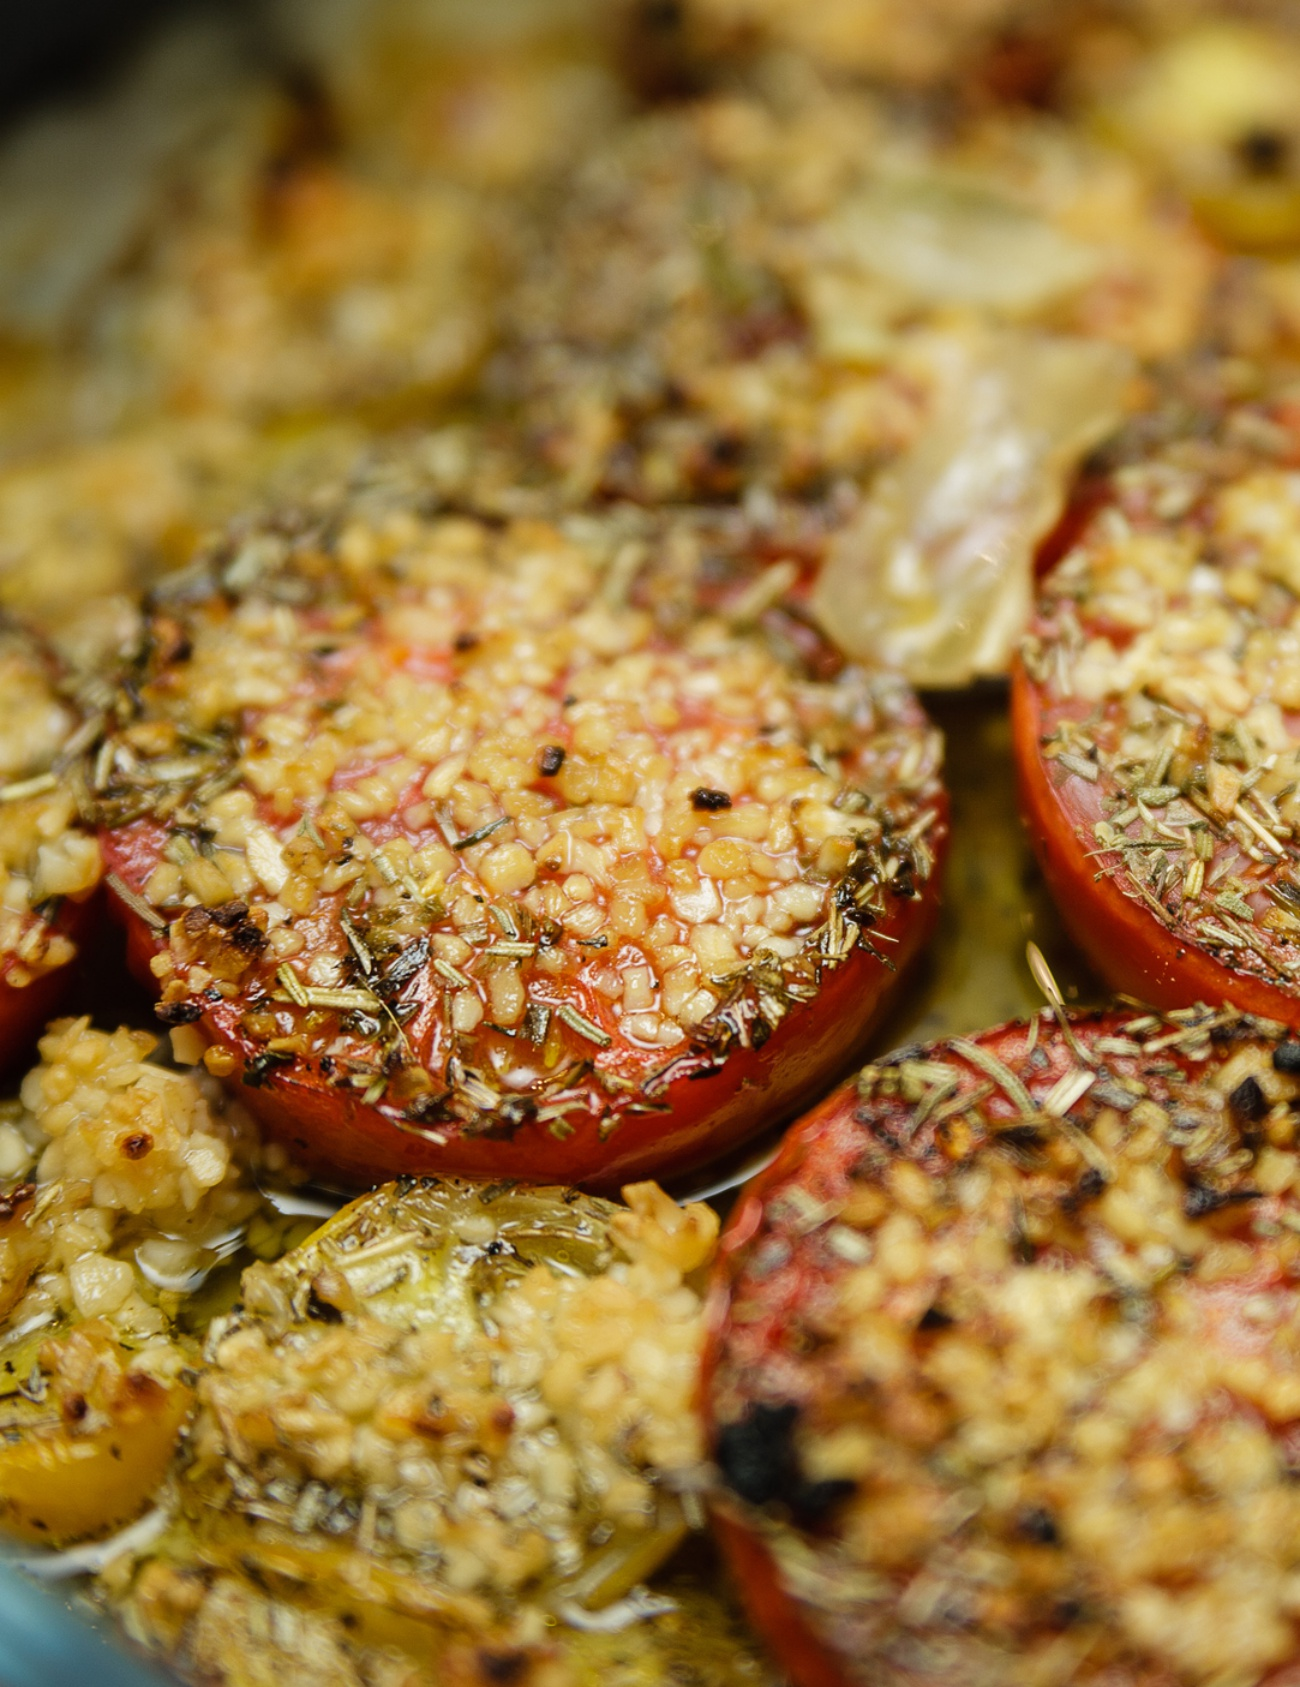 Roasted herb-crusted tomato slices close-up